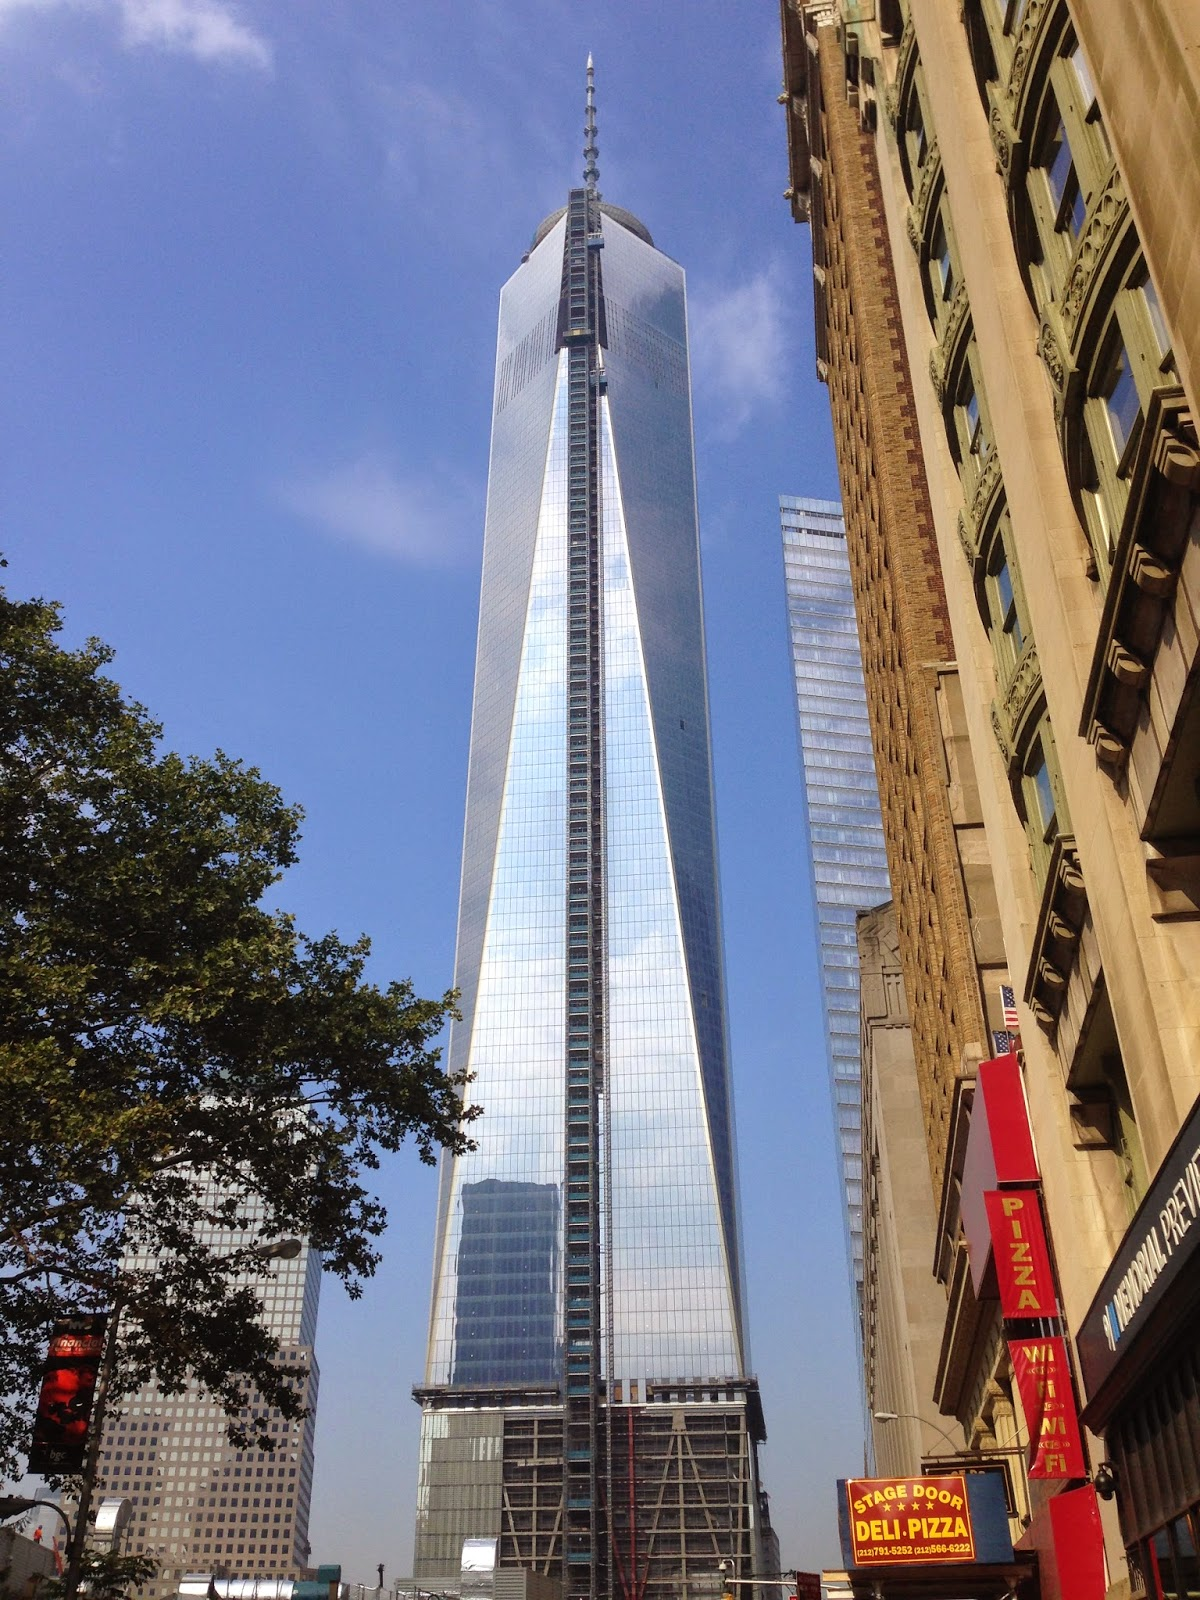 September 11th Thoughts – CyberCrime & Doing Time